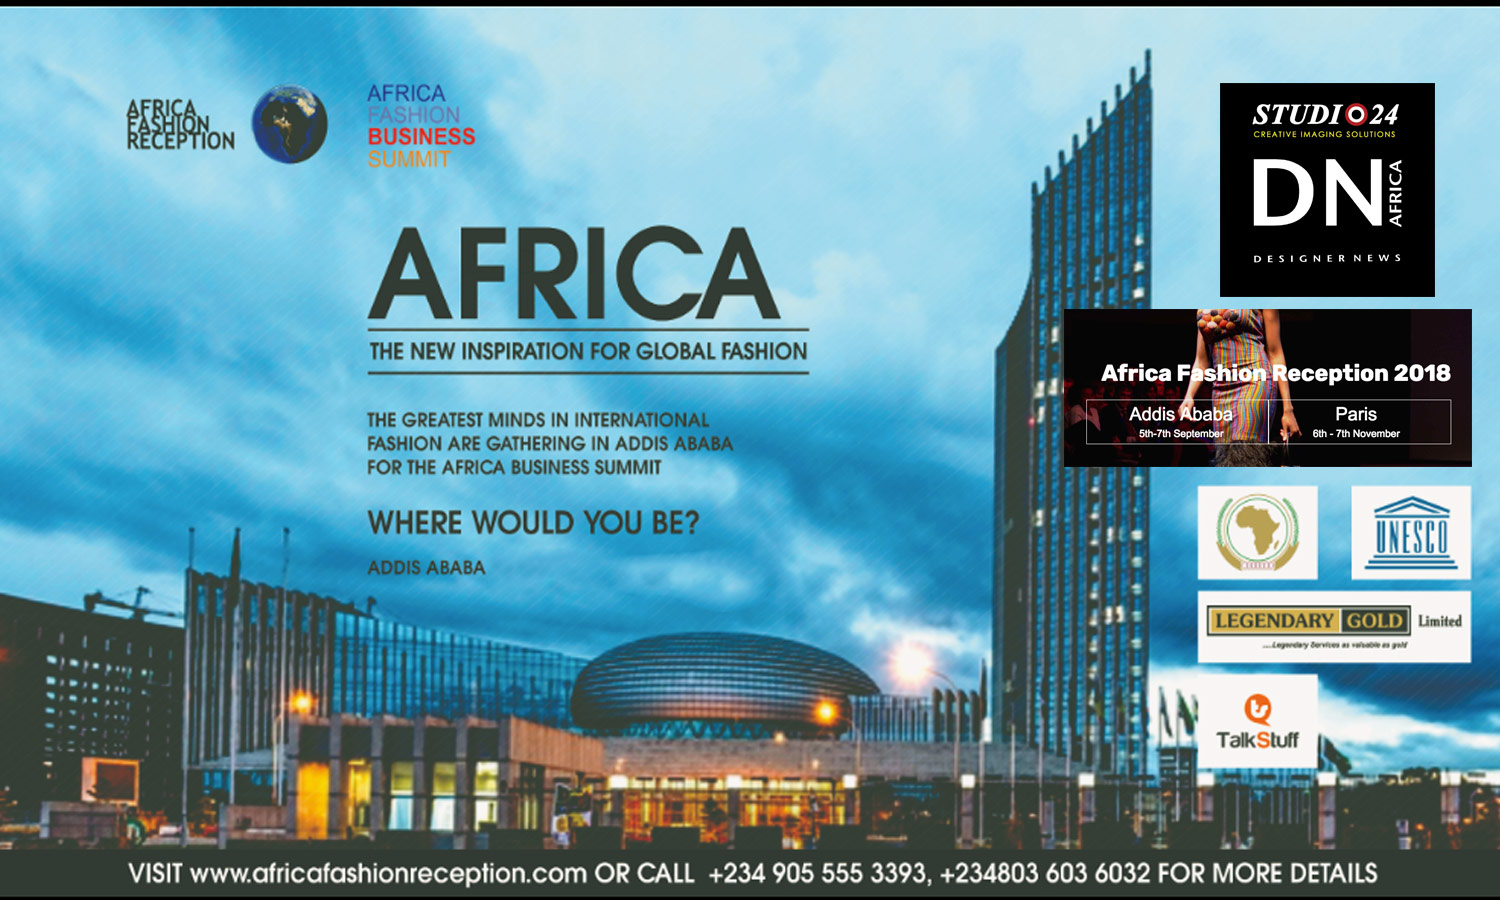 AFRICAN FASHION STYLE MAGAZINE - AFRICAN FASHION RECEPTION 18 4TH EDITION-ADDIS ABEBA - PARIS - LEGENDARY GOLD - LEXY MOJO-EYES - Media Partner DN MAG, DN AFRICA -STUDIO 24 NIGERIA - STUDIO 24 INTERNATIONAL